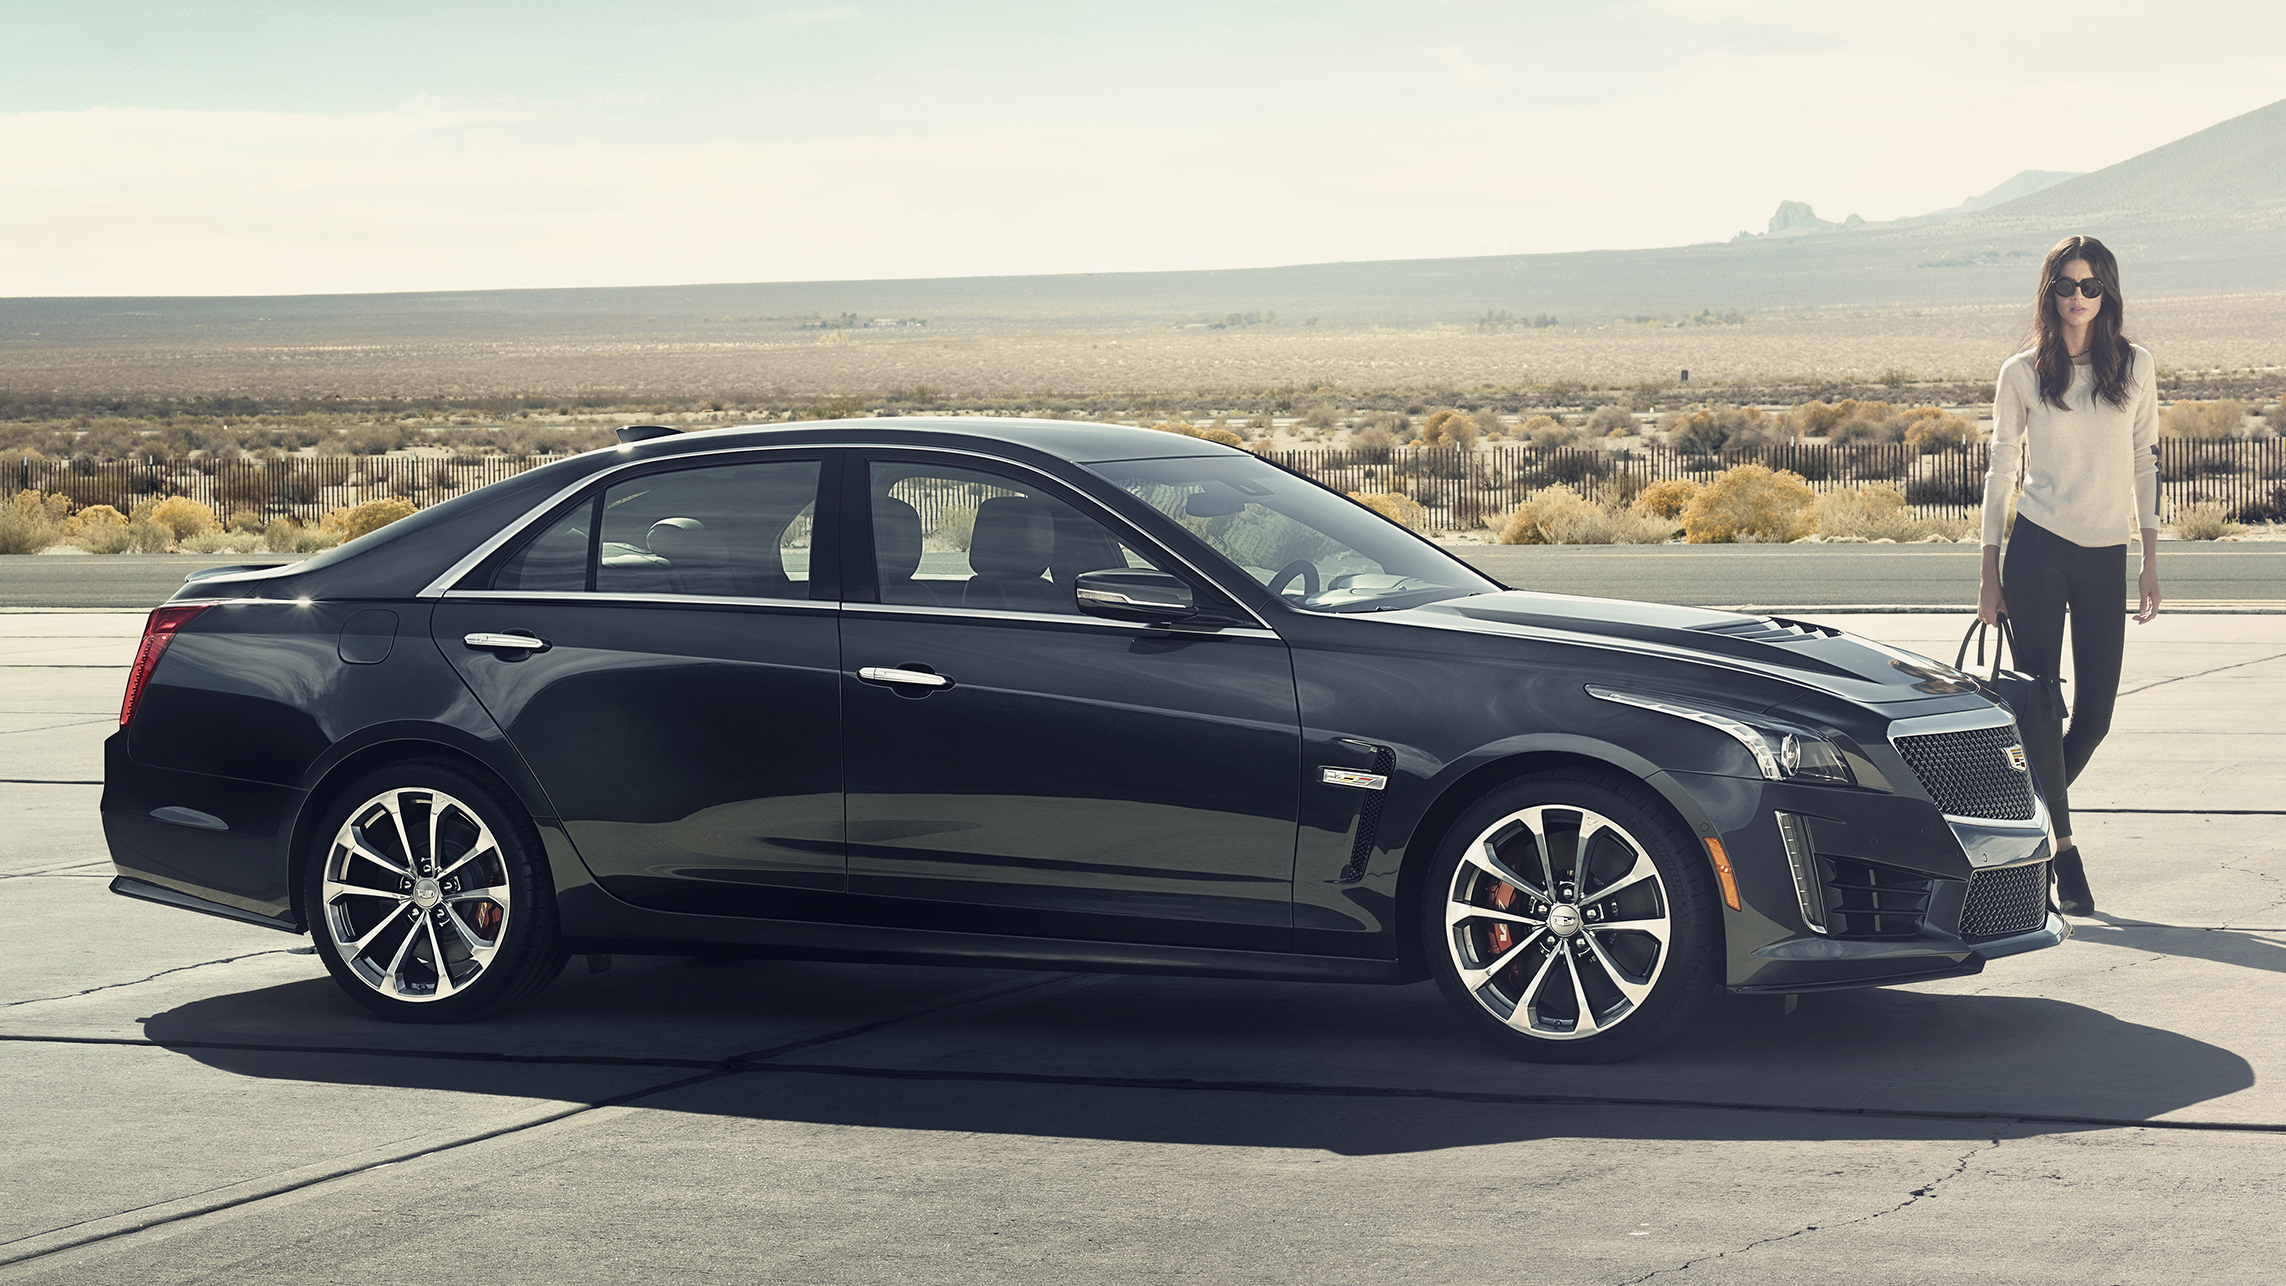 2016 cadillac cts v coupe Quotes